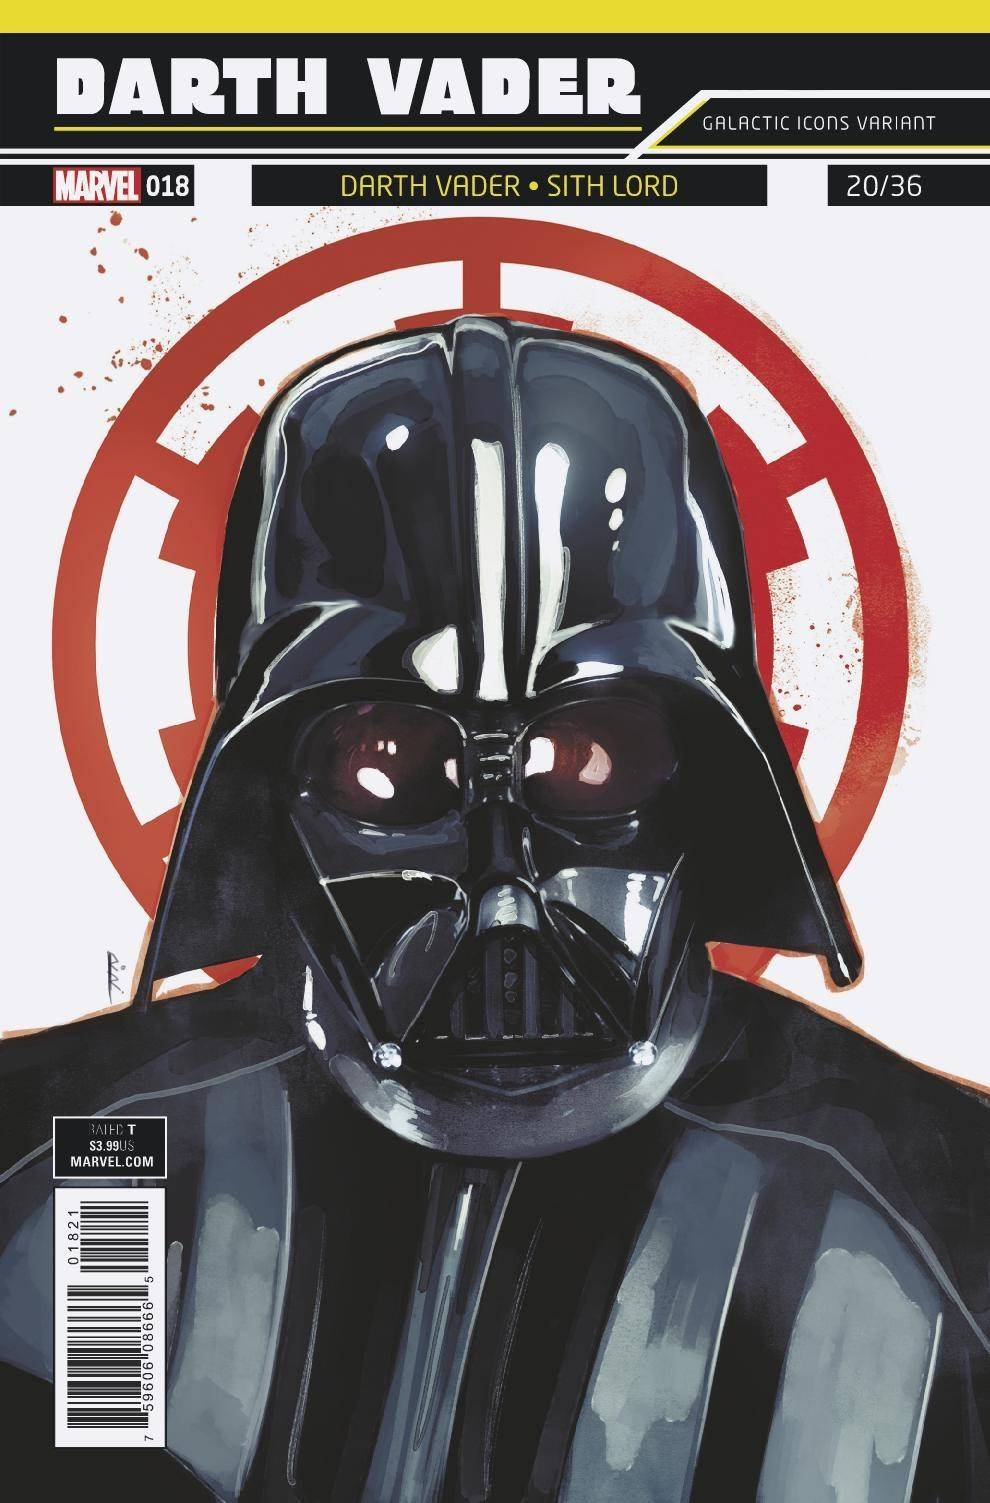 STAR WARS DARTH VADER #18 REIS GALACTIC ICON VAR (07/18/2018)